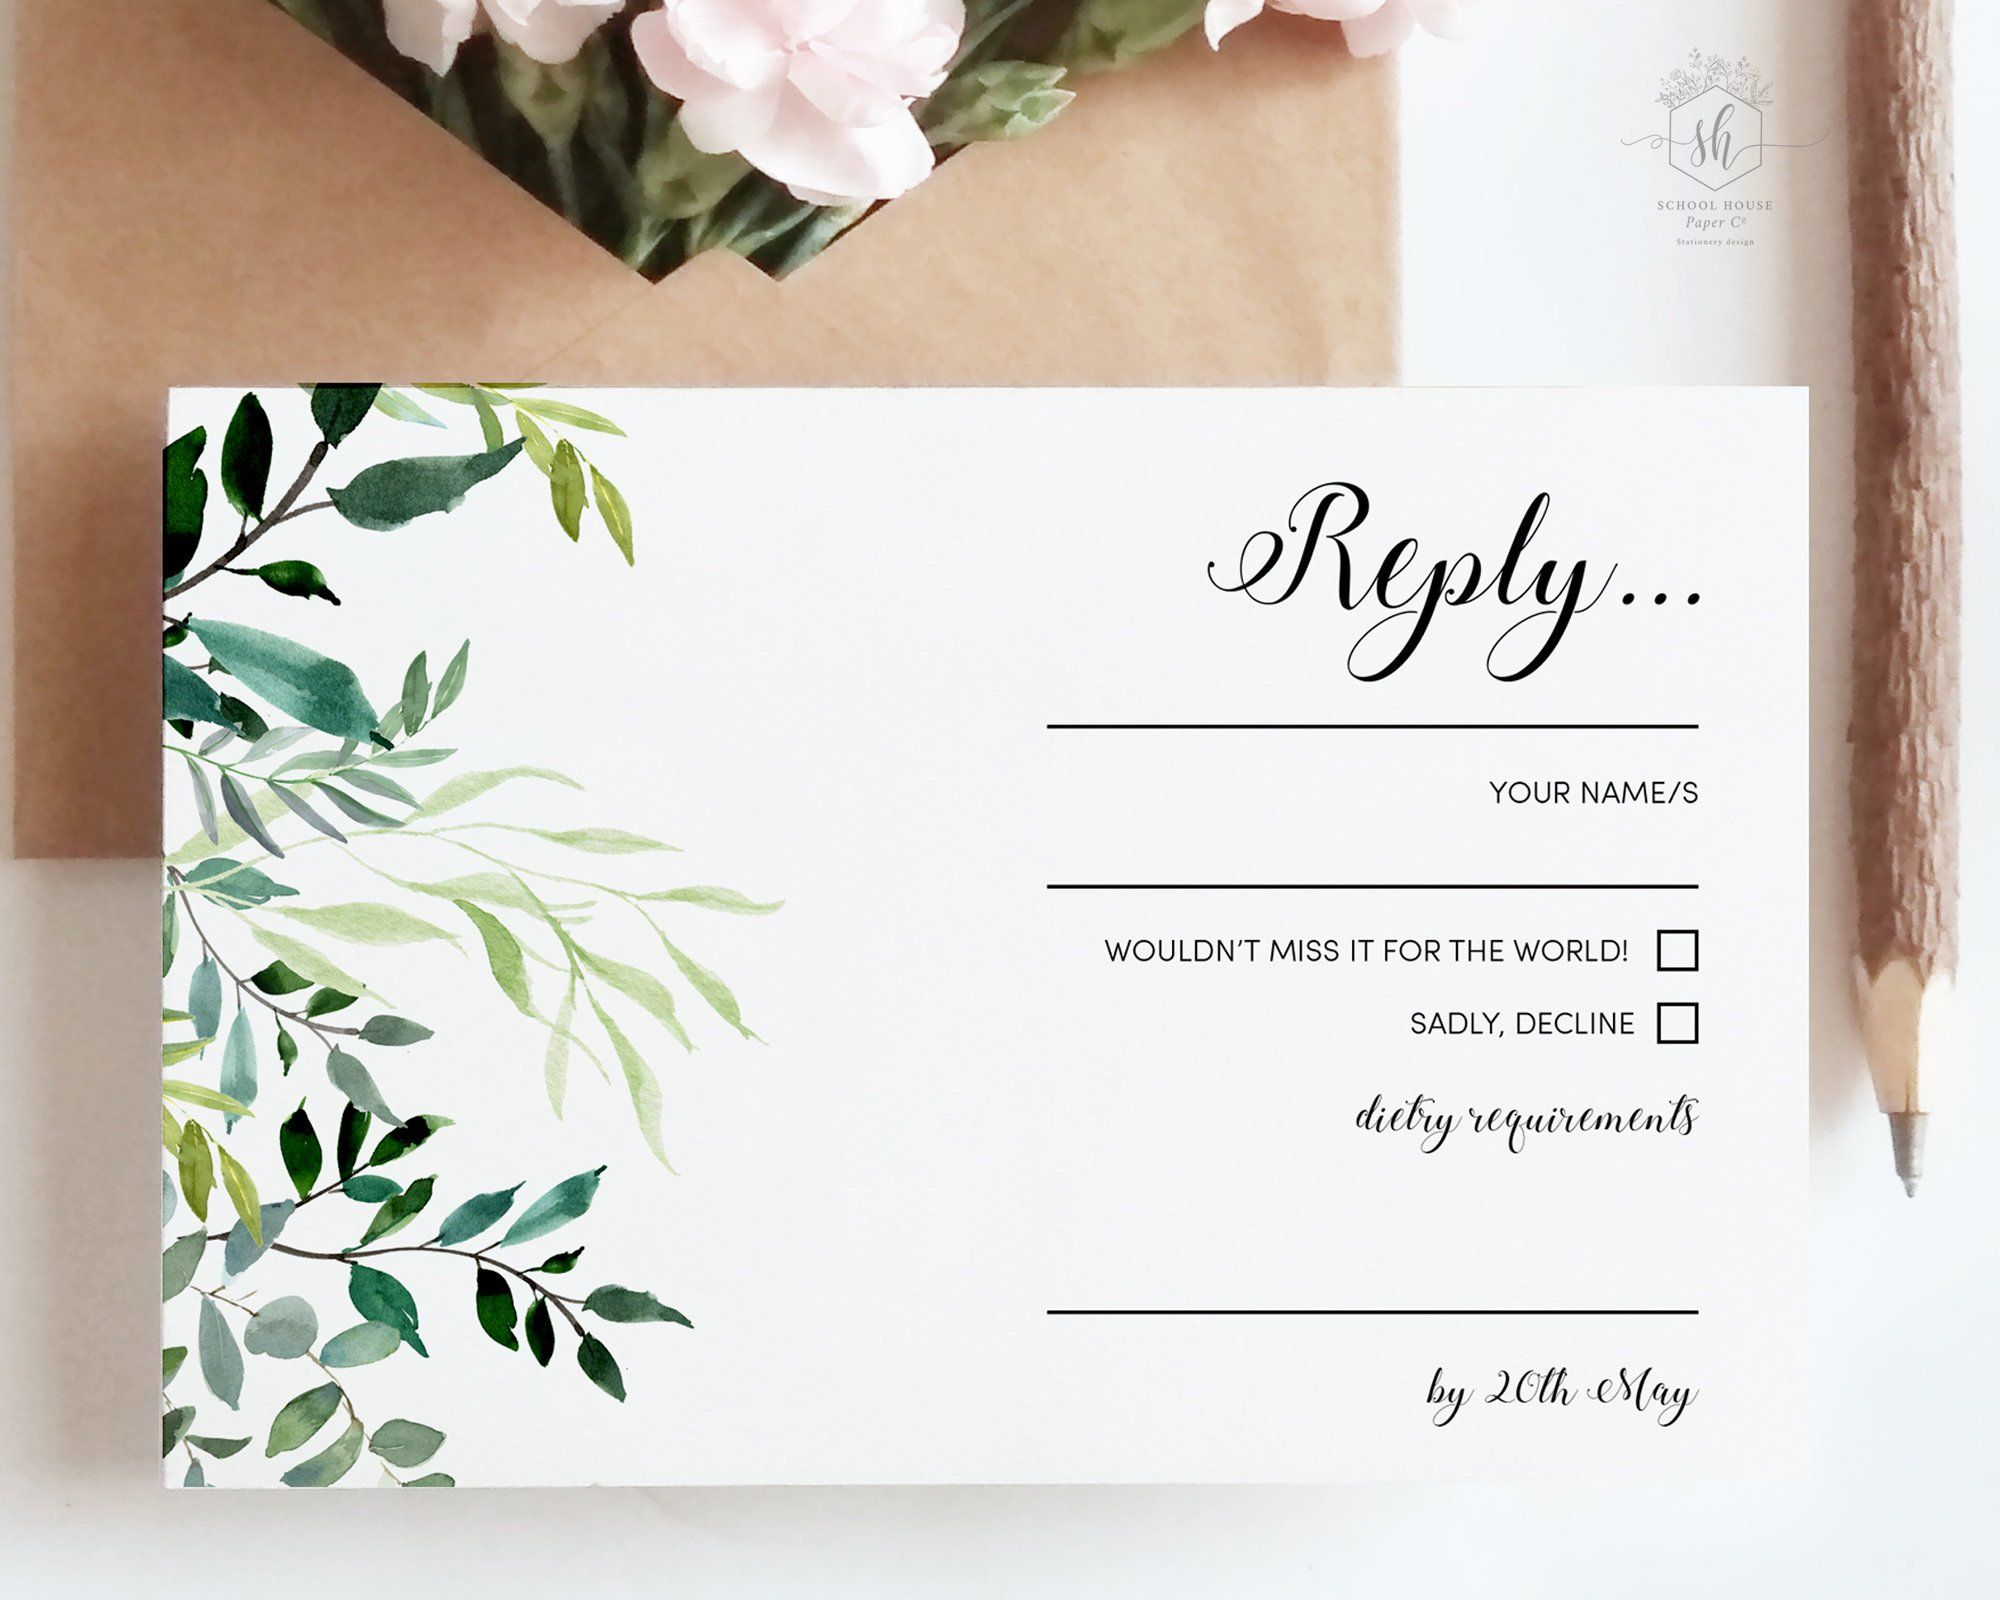 Wedding RSVP Template with eucalyptus greenery this